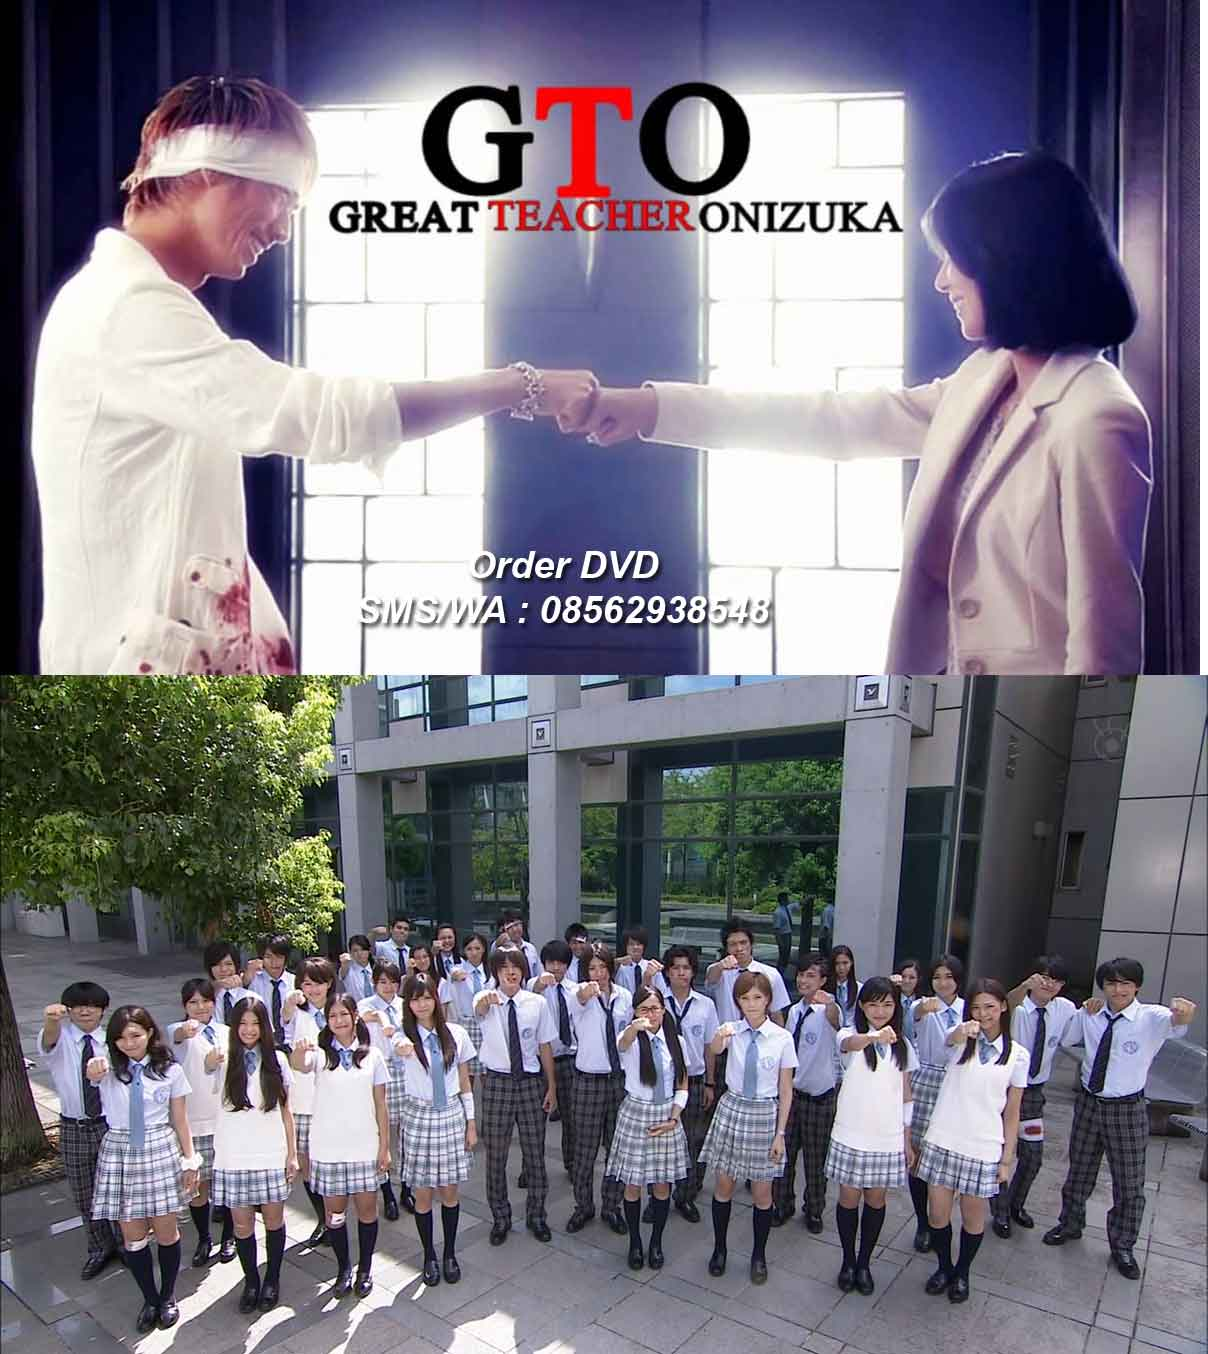 Jual DVD Film Great Teacher Onizuka Remake Drama